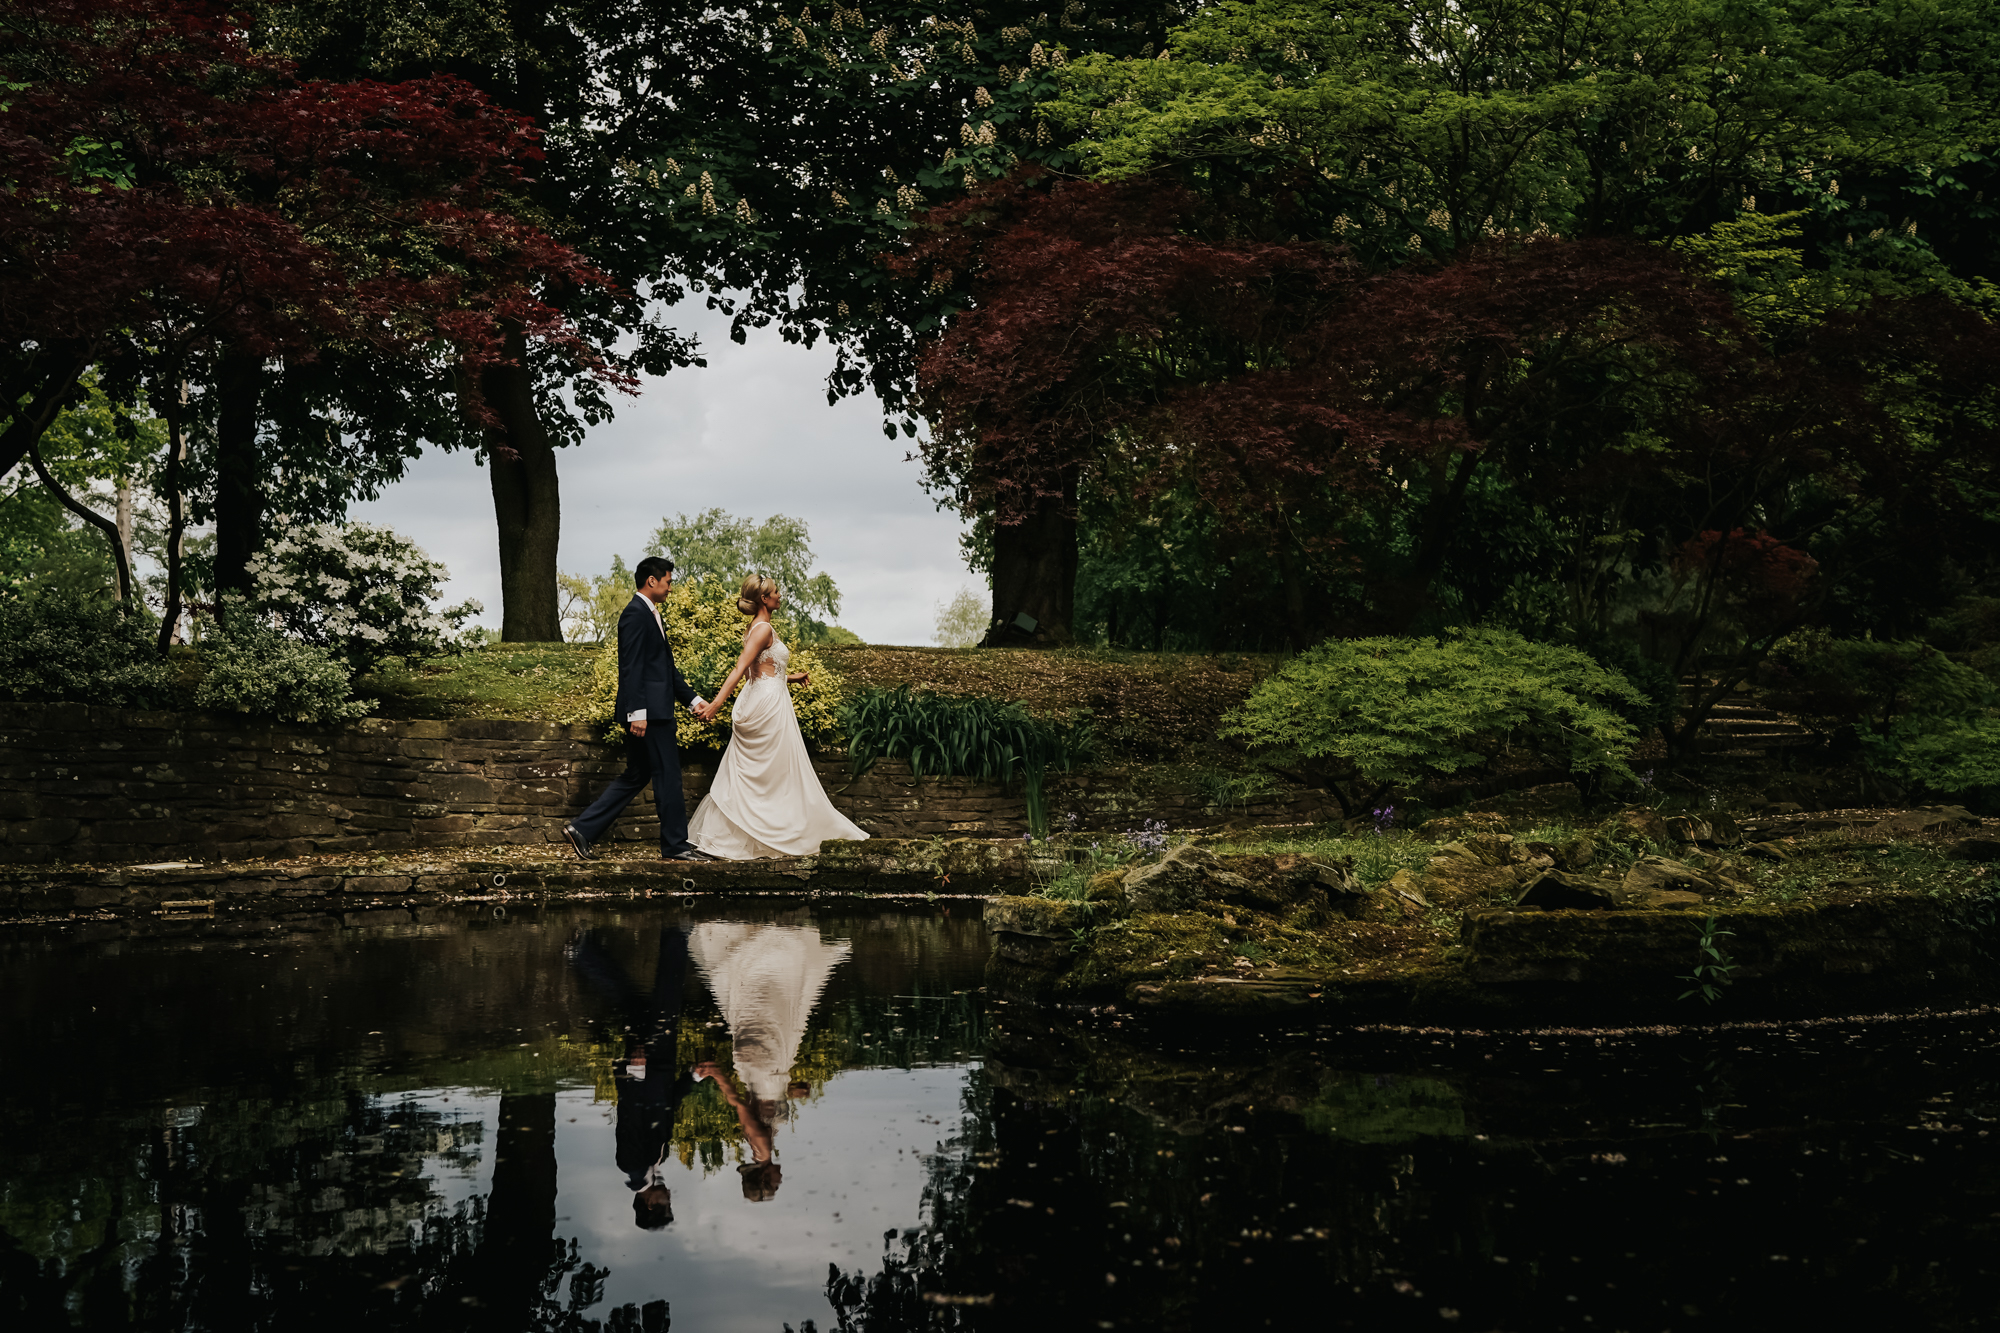 Colshaw Hall Chinese Wedding Photography lancashire wedding photographer (34 of 46).jpg